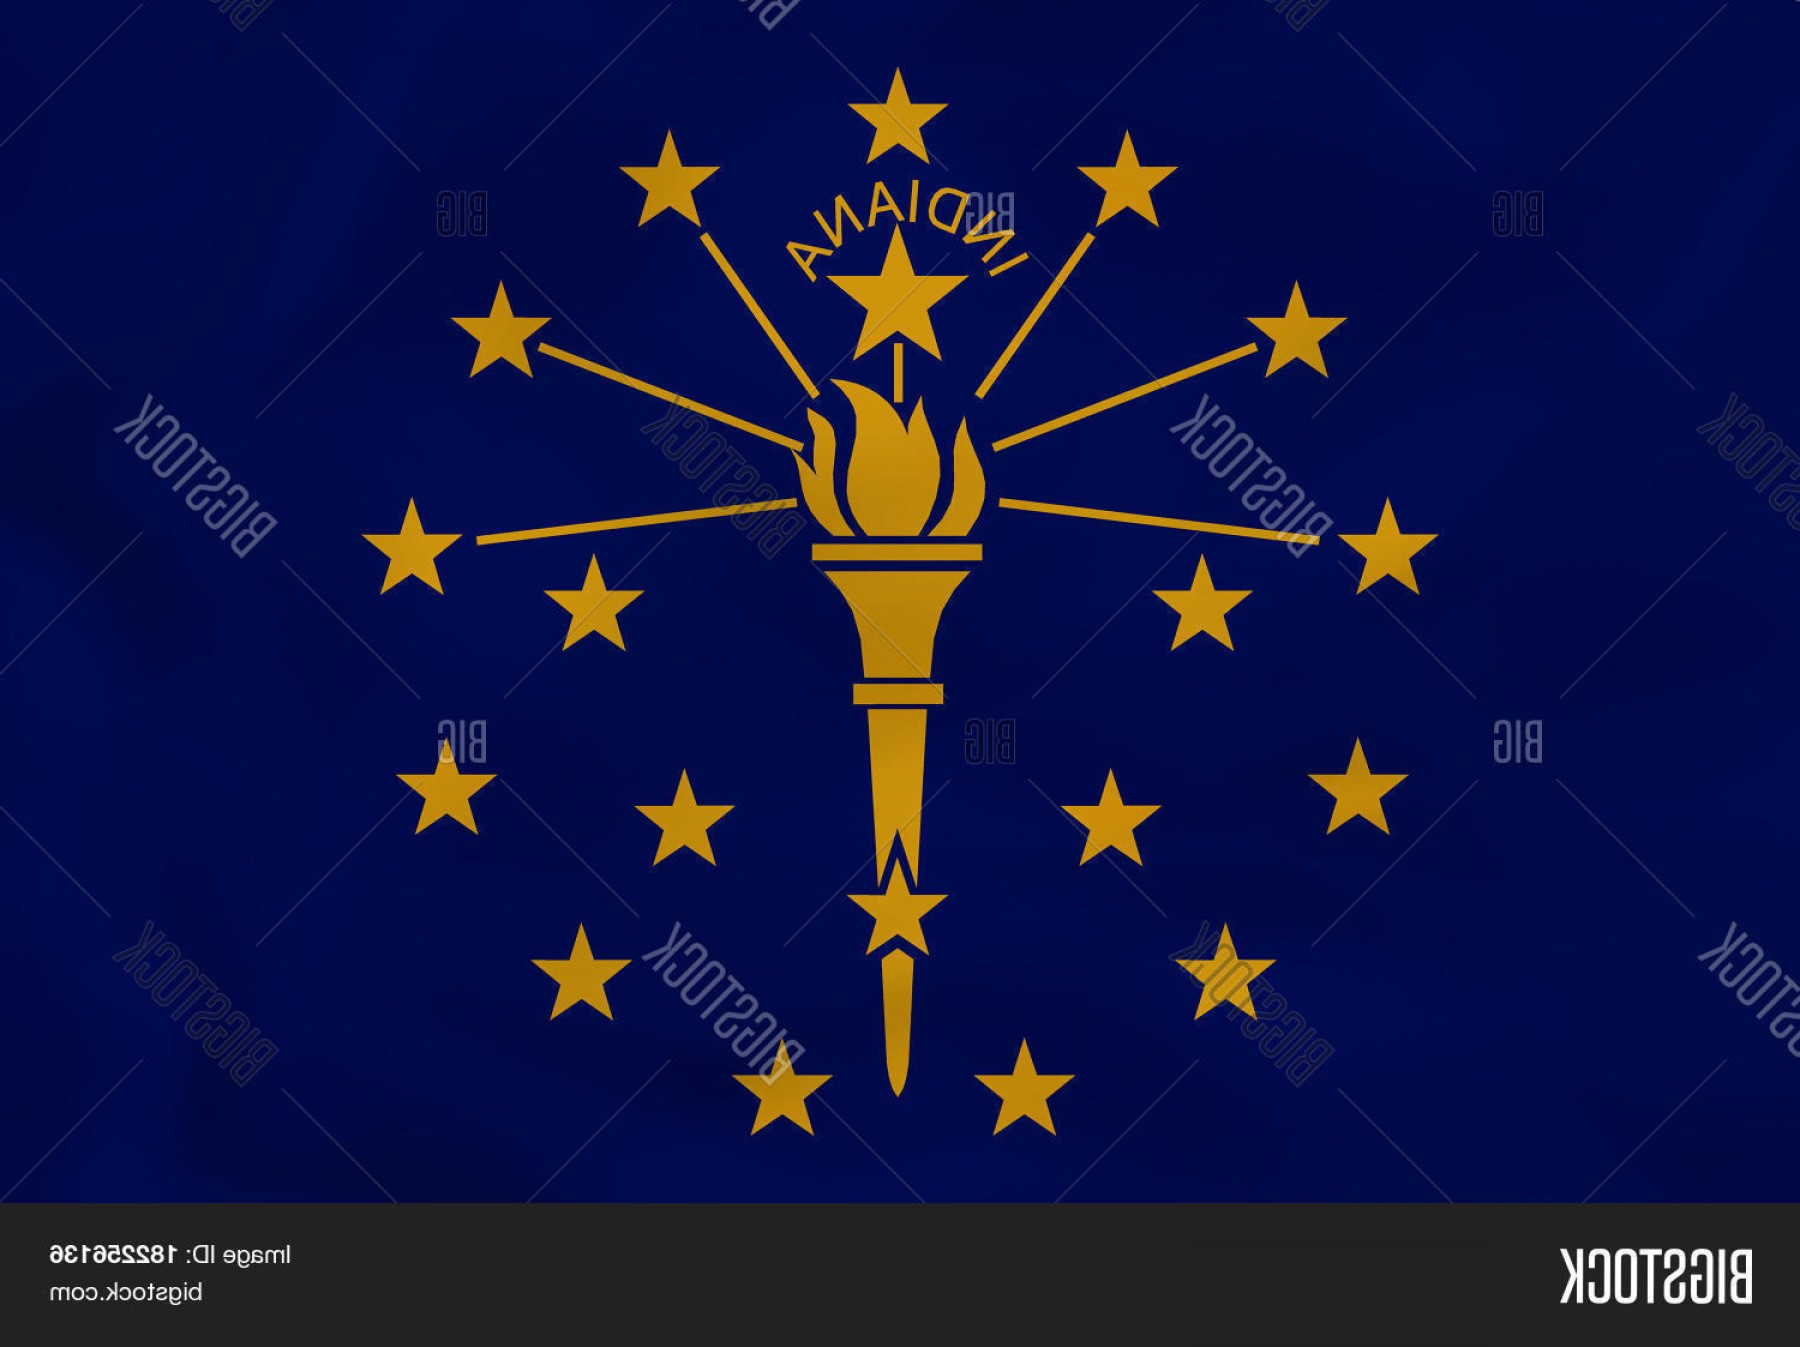 State Flag Images Vector: Stock Vector Indiana Waving Flag Indiana State Flag Background Texture